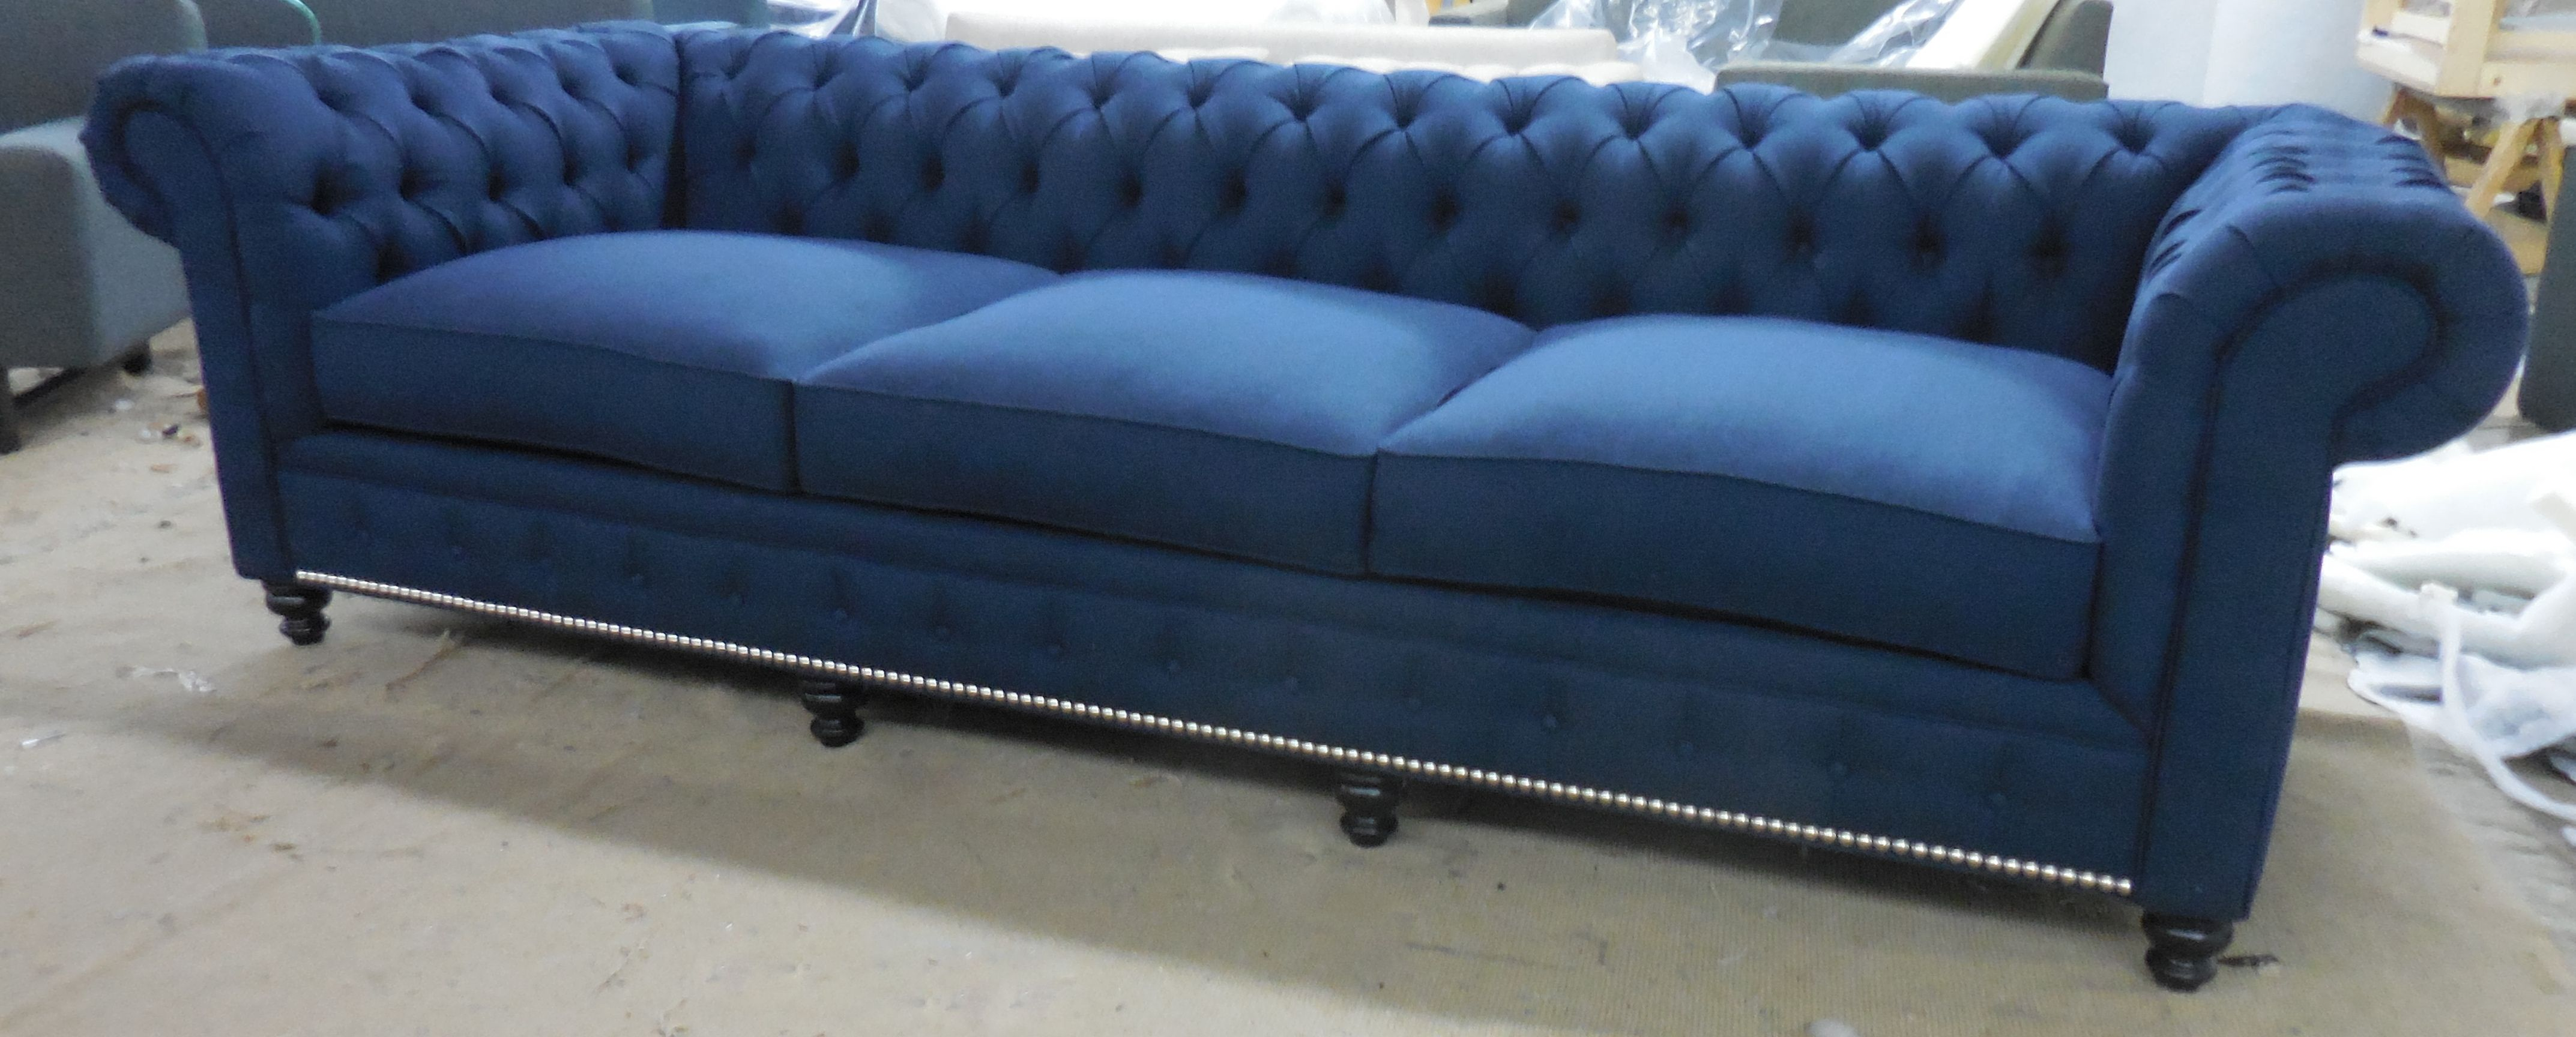 KENZIE STYLE CUSTOM CHESTERFIELD SOFA ANY SIZE OR FABRIC MONARCH